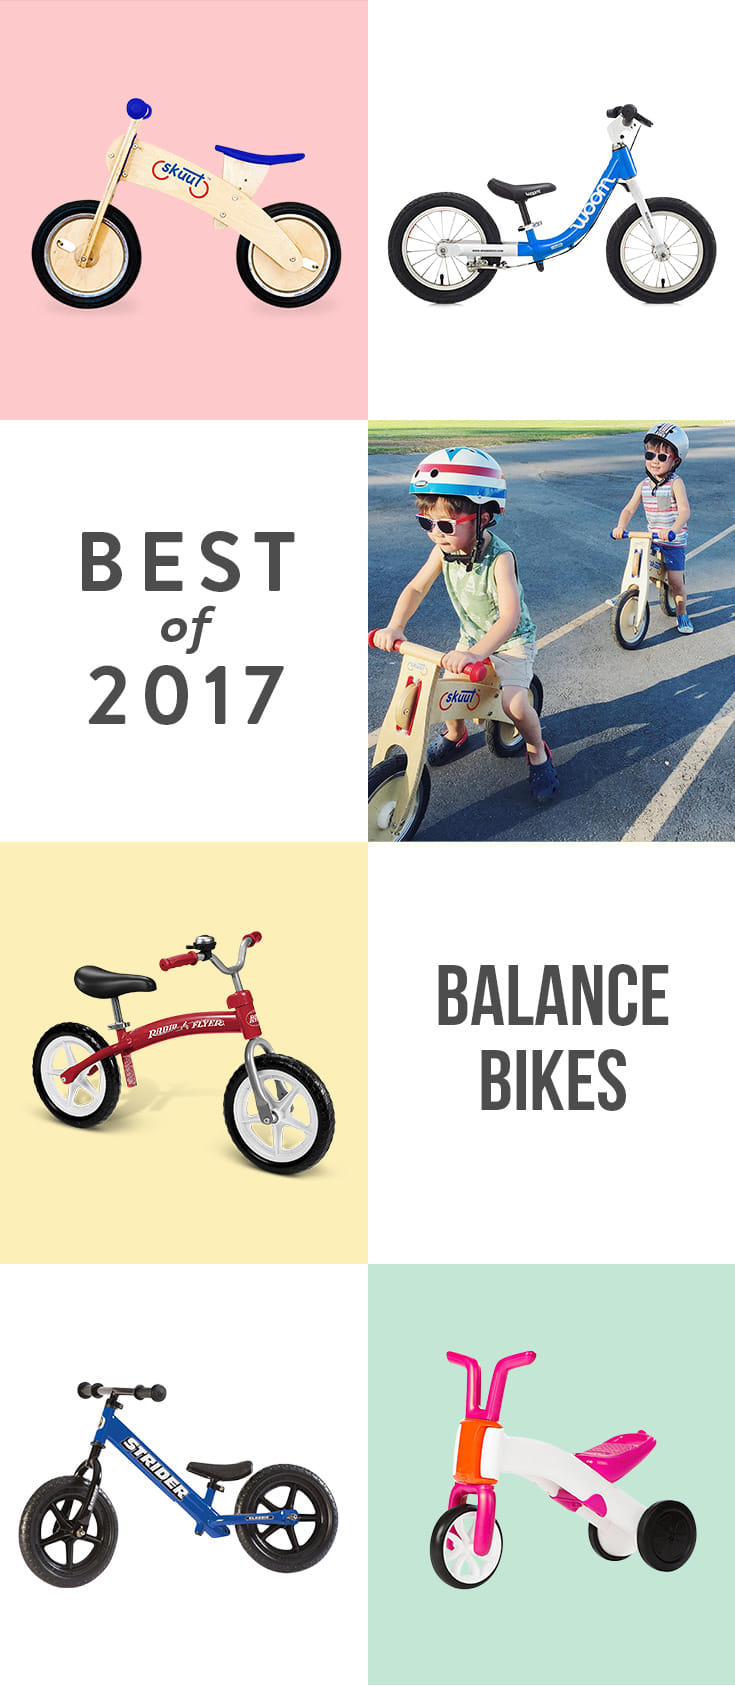 Balance bikes build confidence, independence, and coordination—an awesome trifecta. Many biking experts recommend skipping tricycles and training wheels altogether and starting here instead.